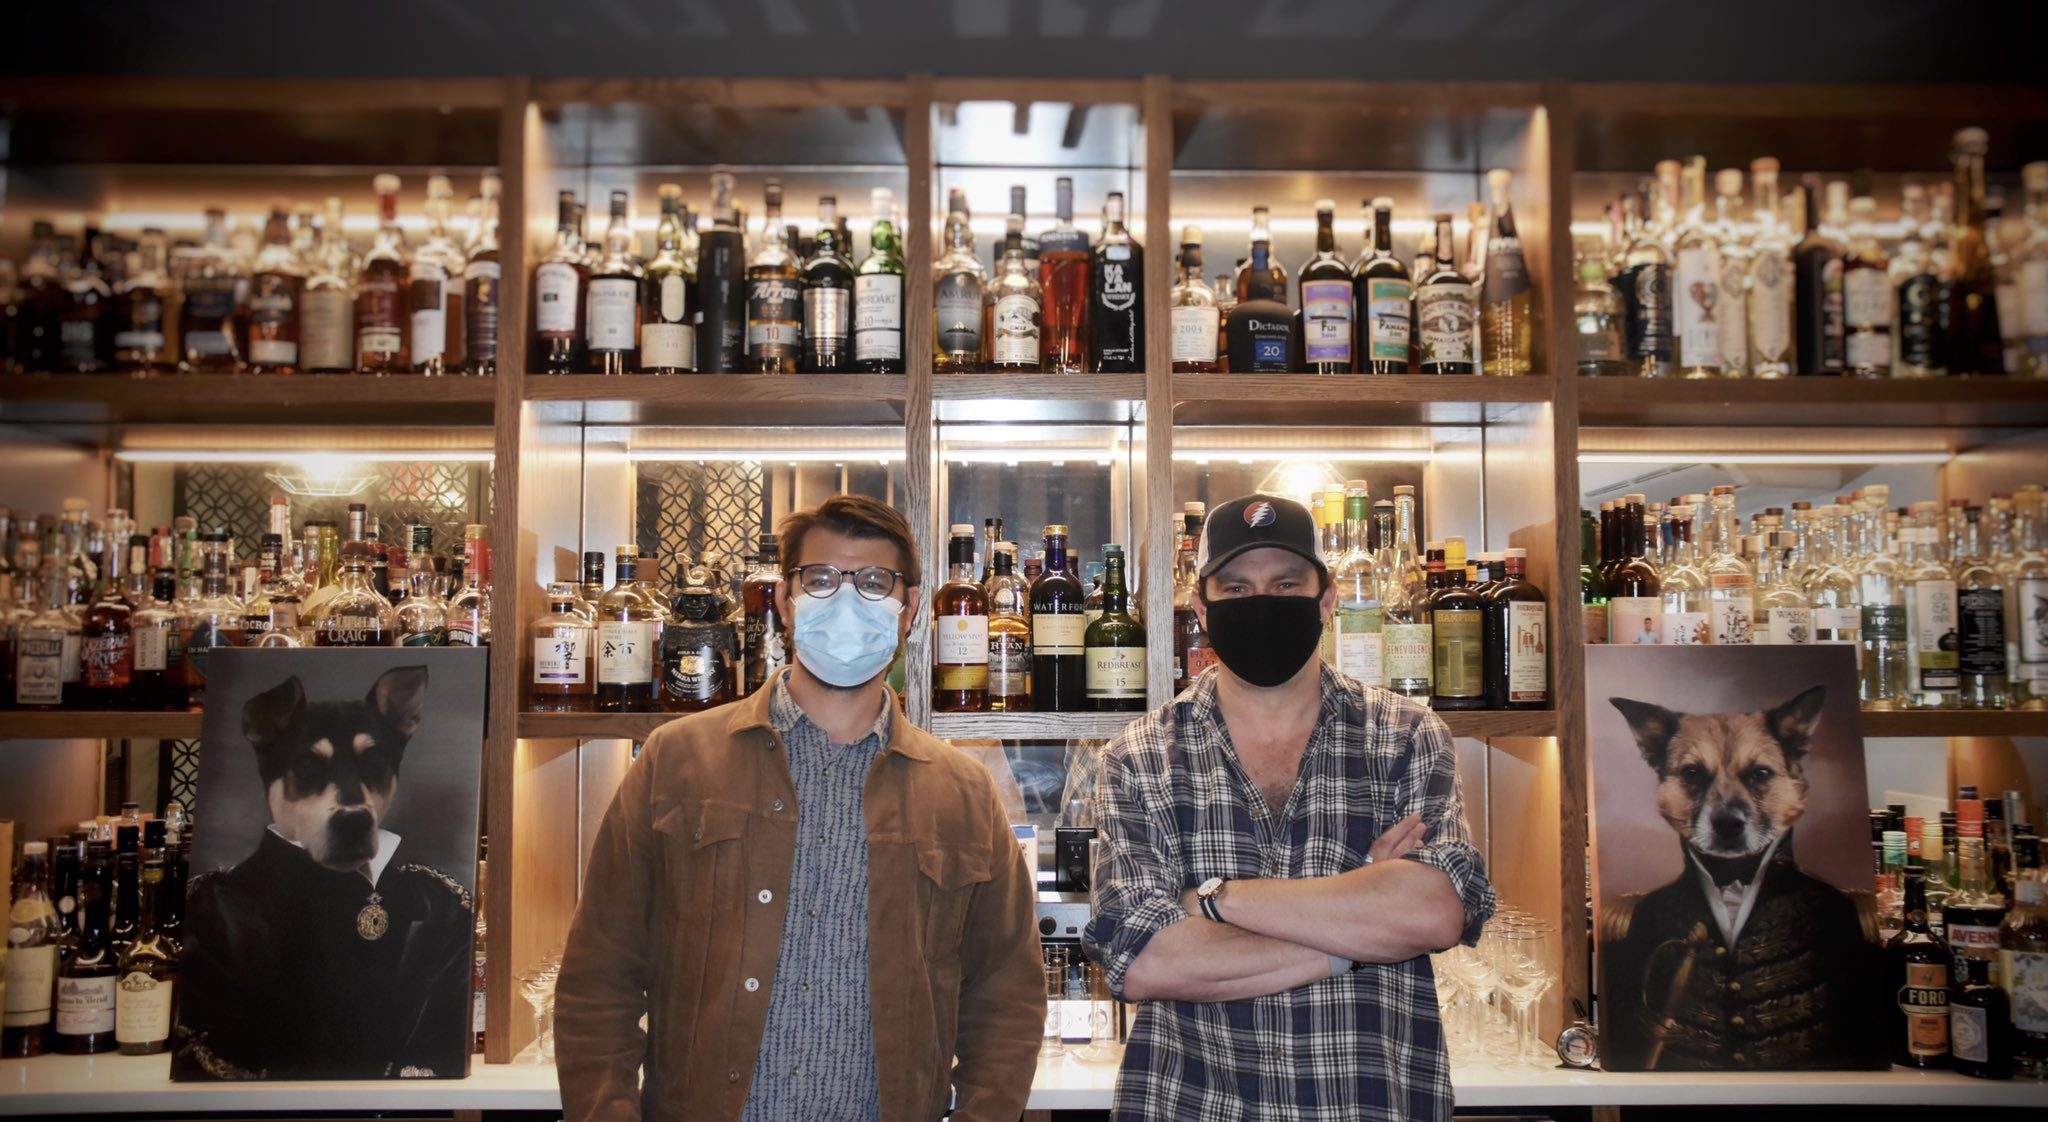 As officials issue new guidance on masks, Capitol Hill bar The Doctor's Office joins spots requiring proof of vaccination